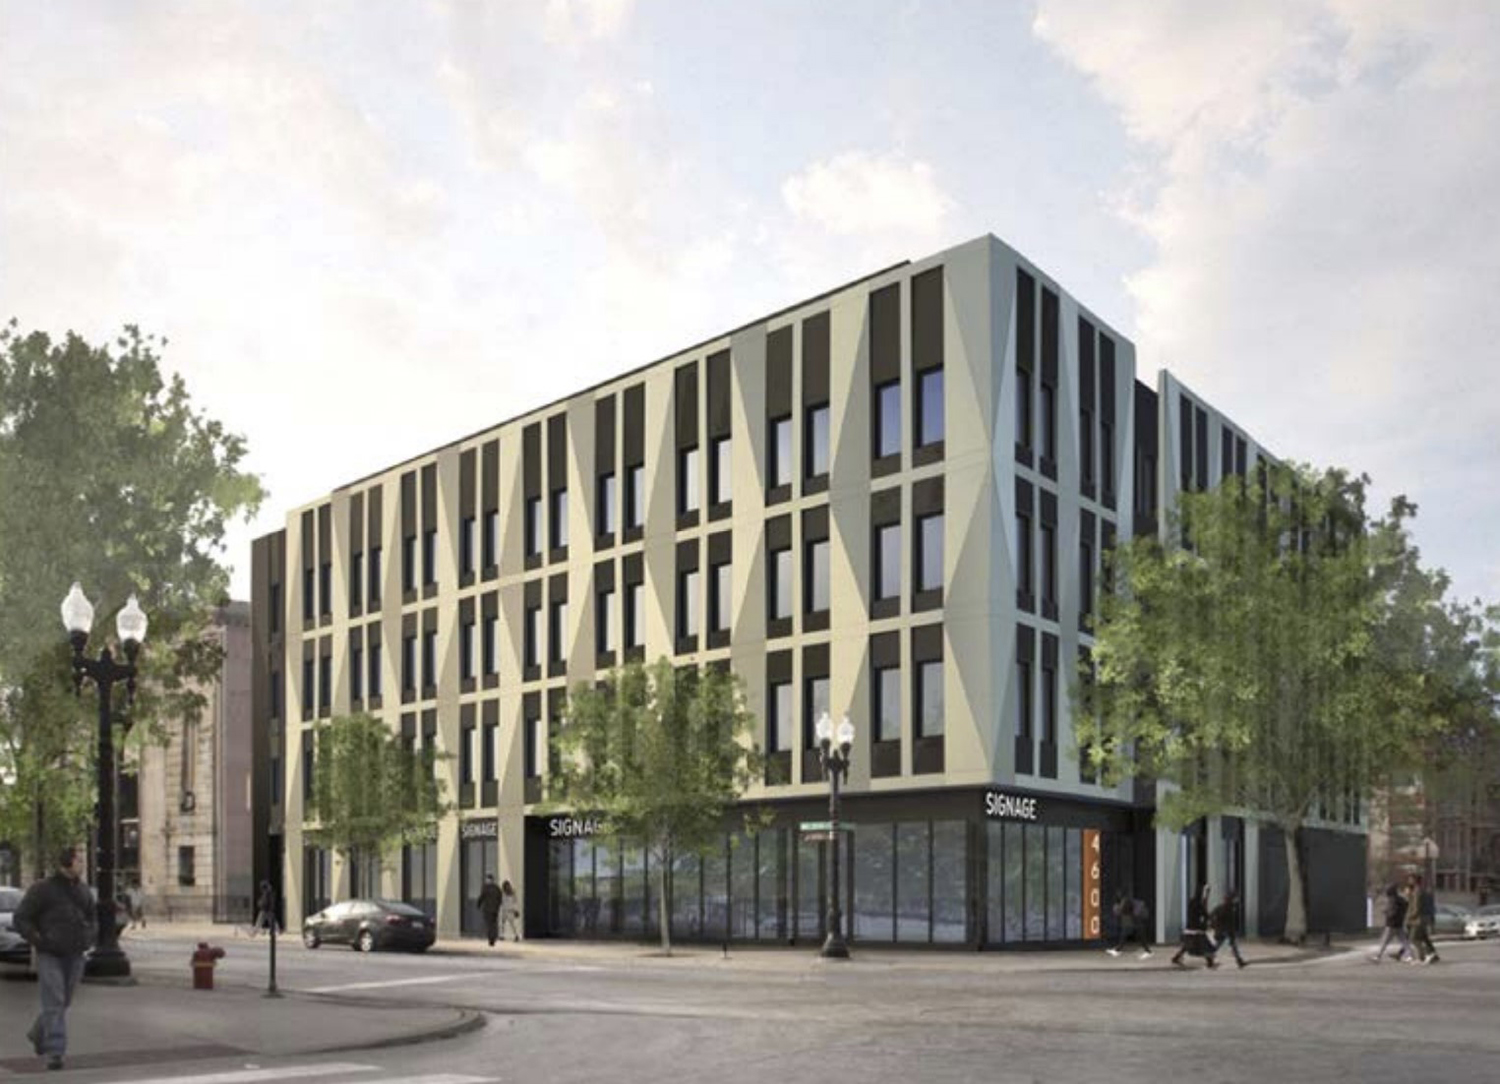 4600 N Kenmore Avenue. Rendering by Level Architecture